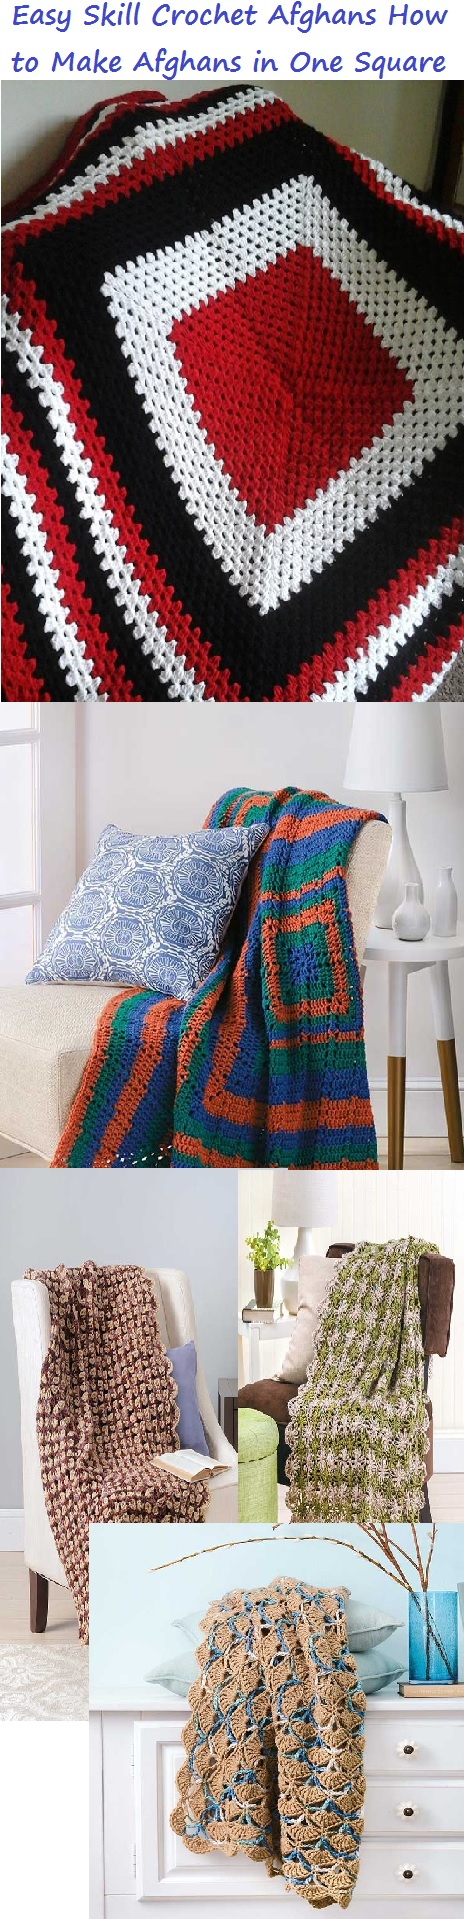 Easy to Crochet One Square Afghan Patterns Granny Squares